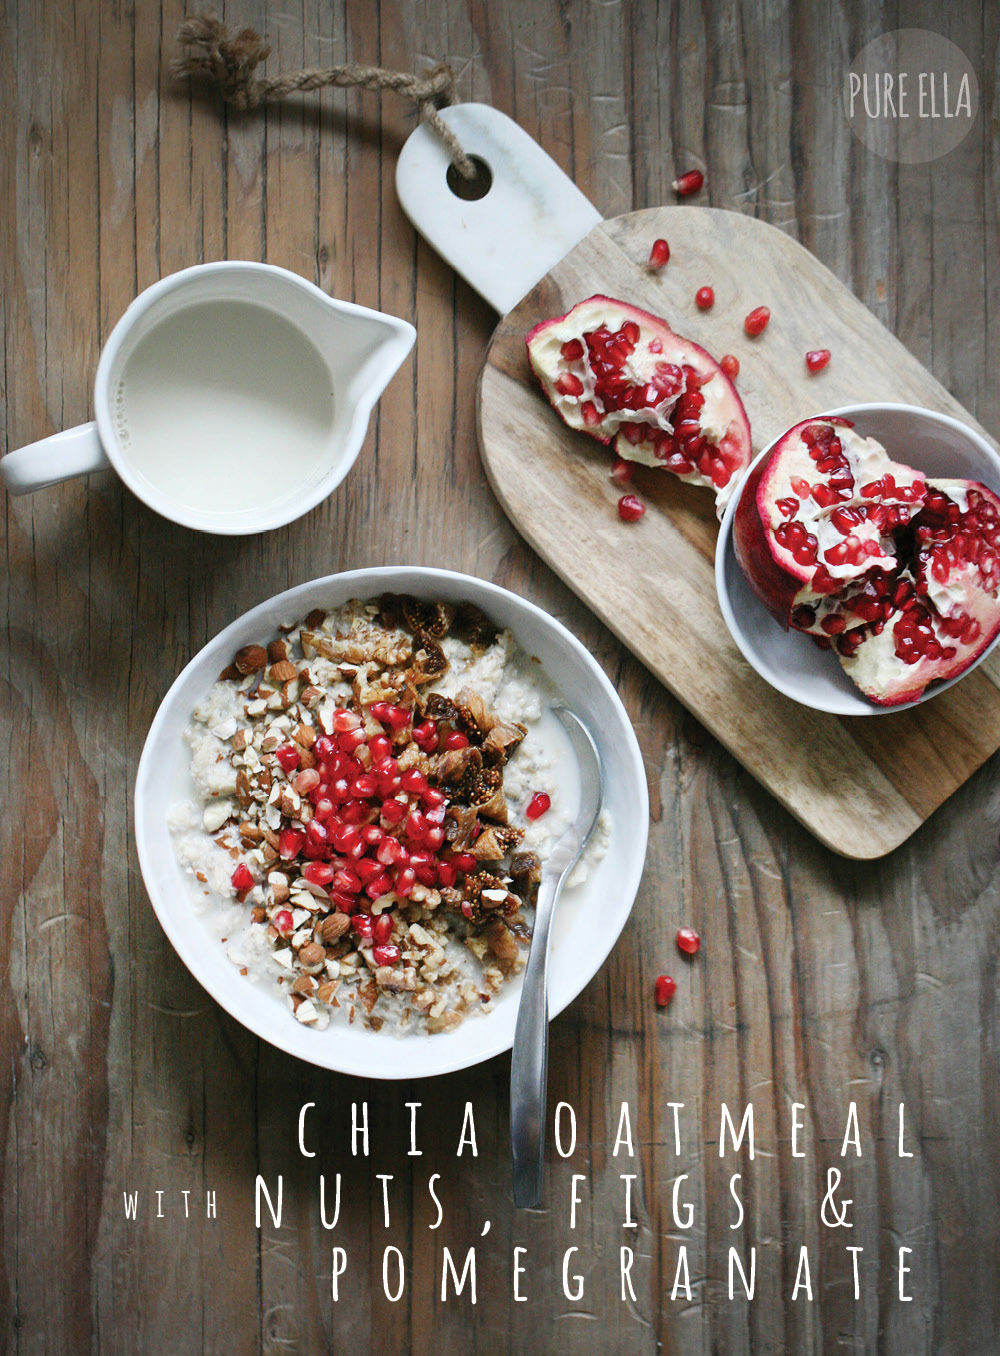 Pure-Ella-Chia-Oatmeal-with-Nuts-Figs-and-Pomegranate